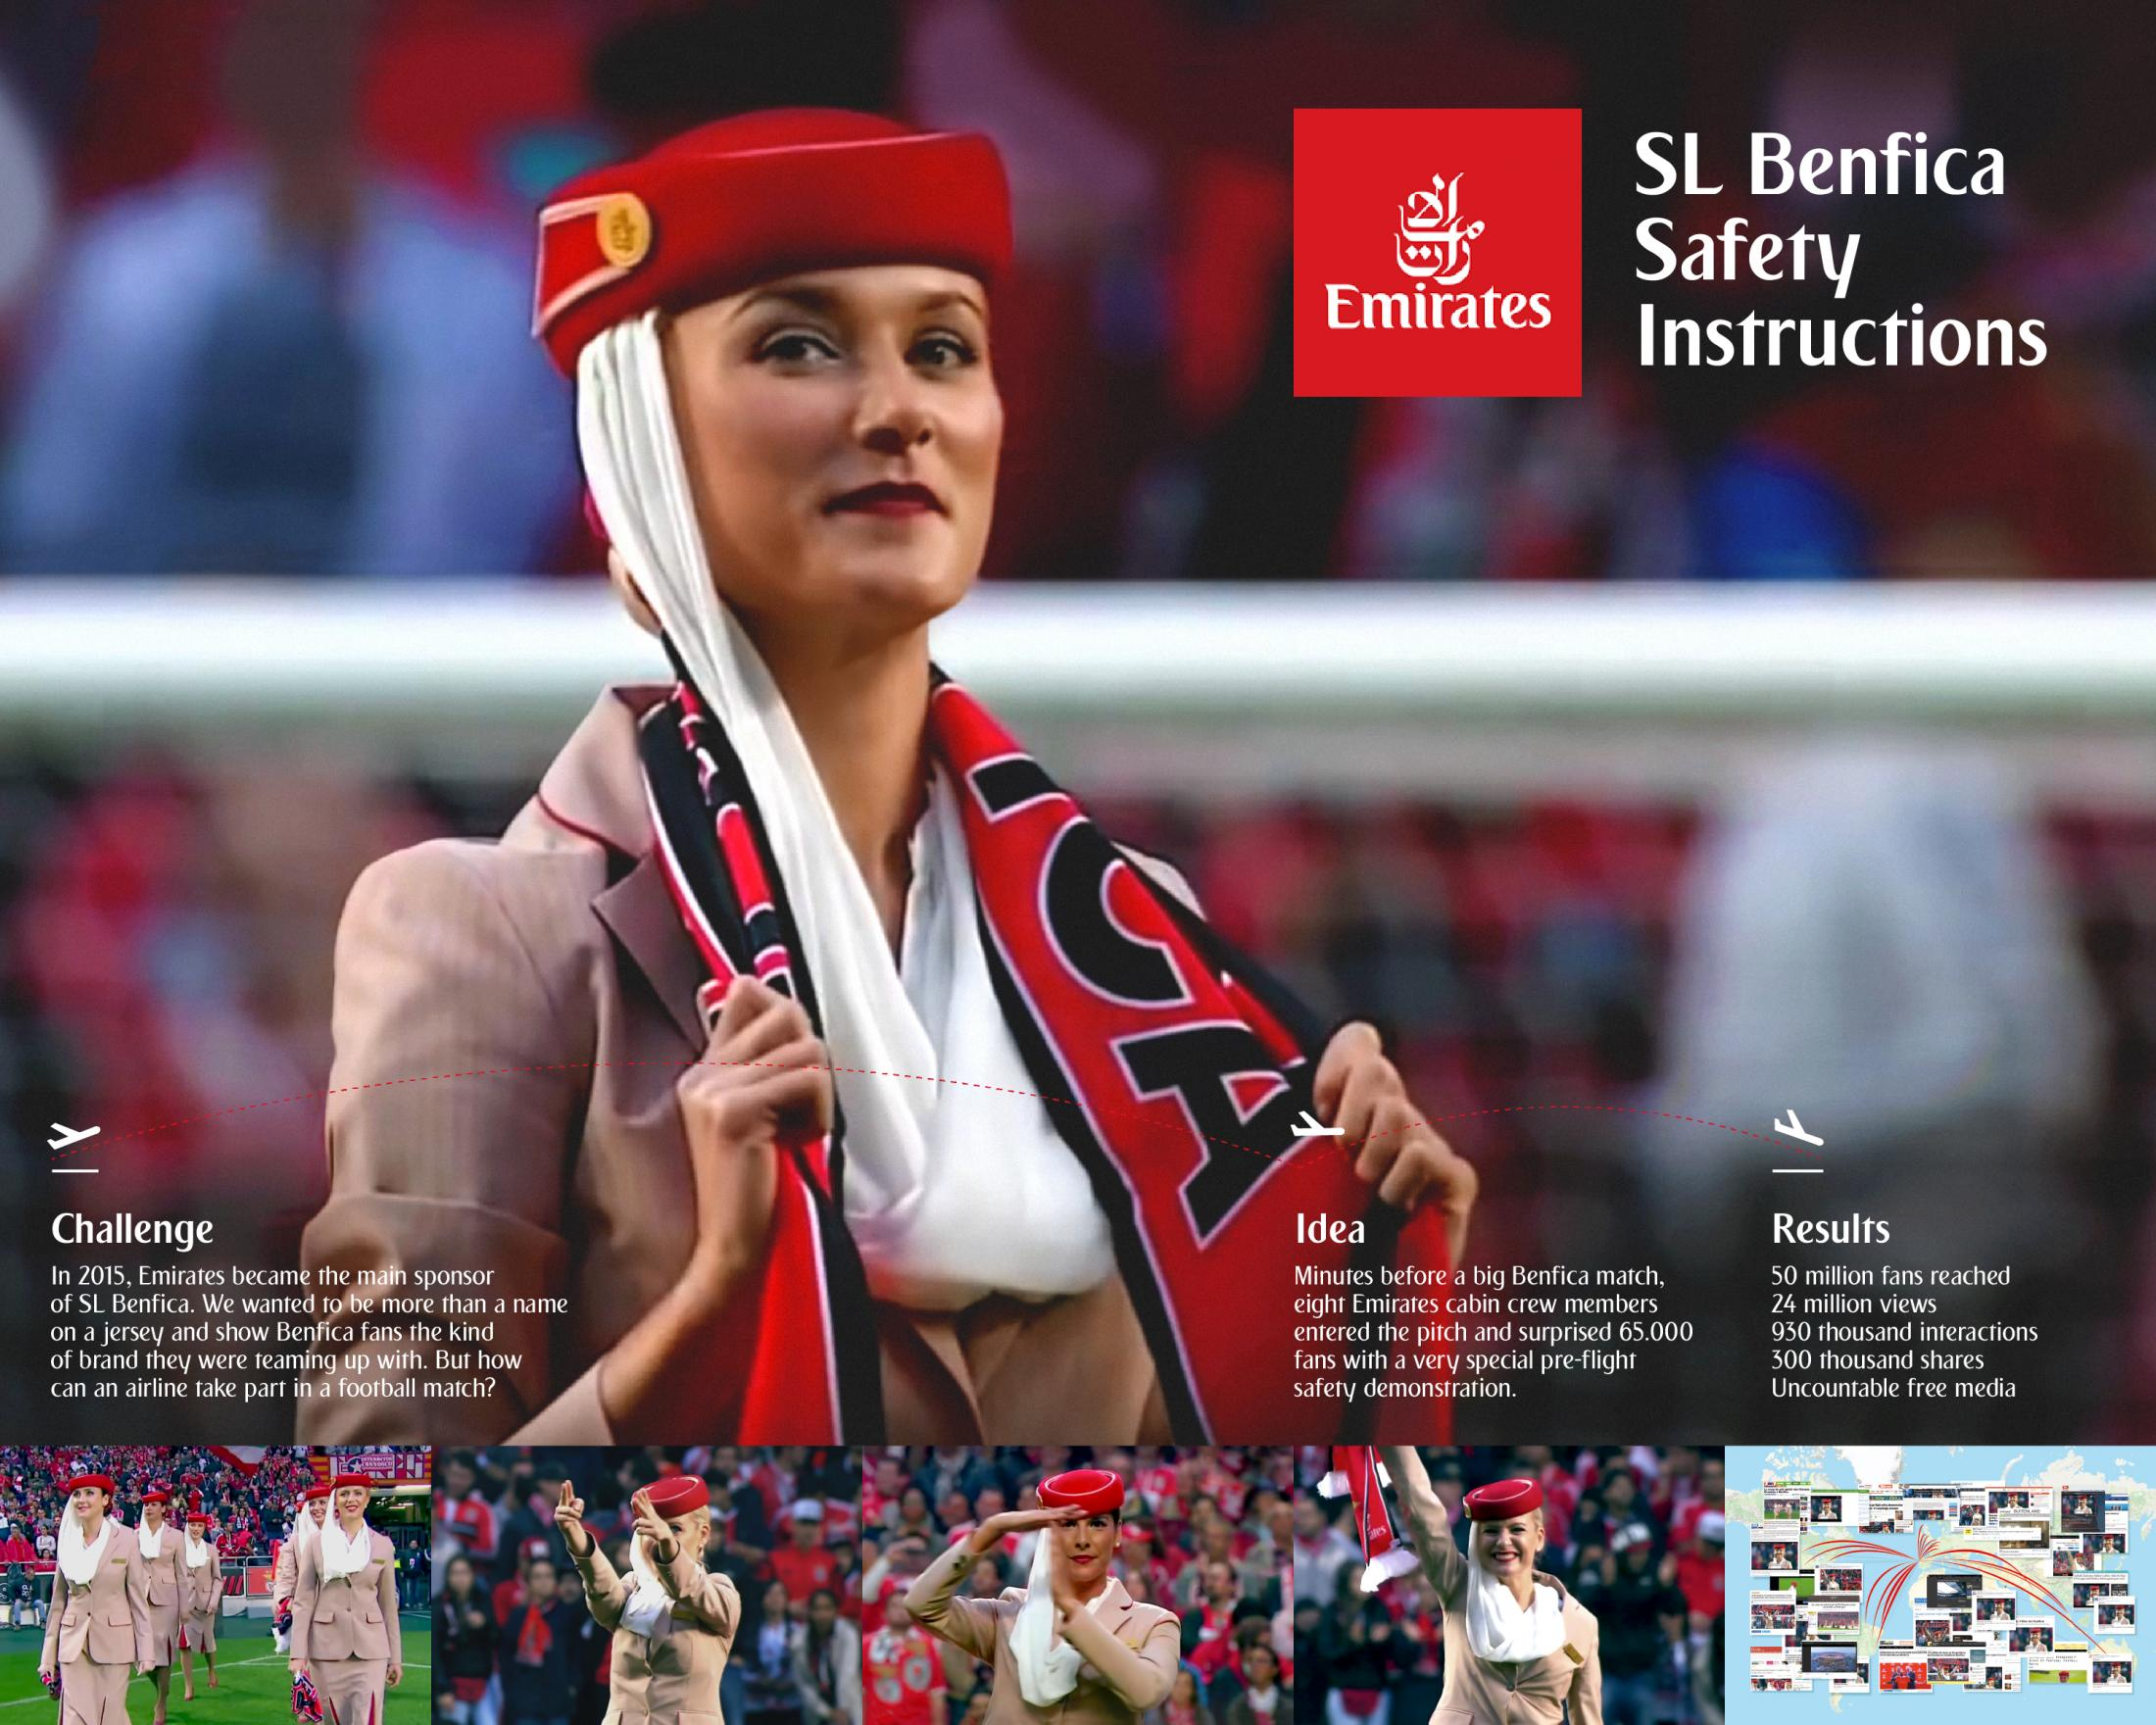 Thumbnail for SL Benfica Safety Instructions